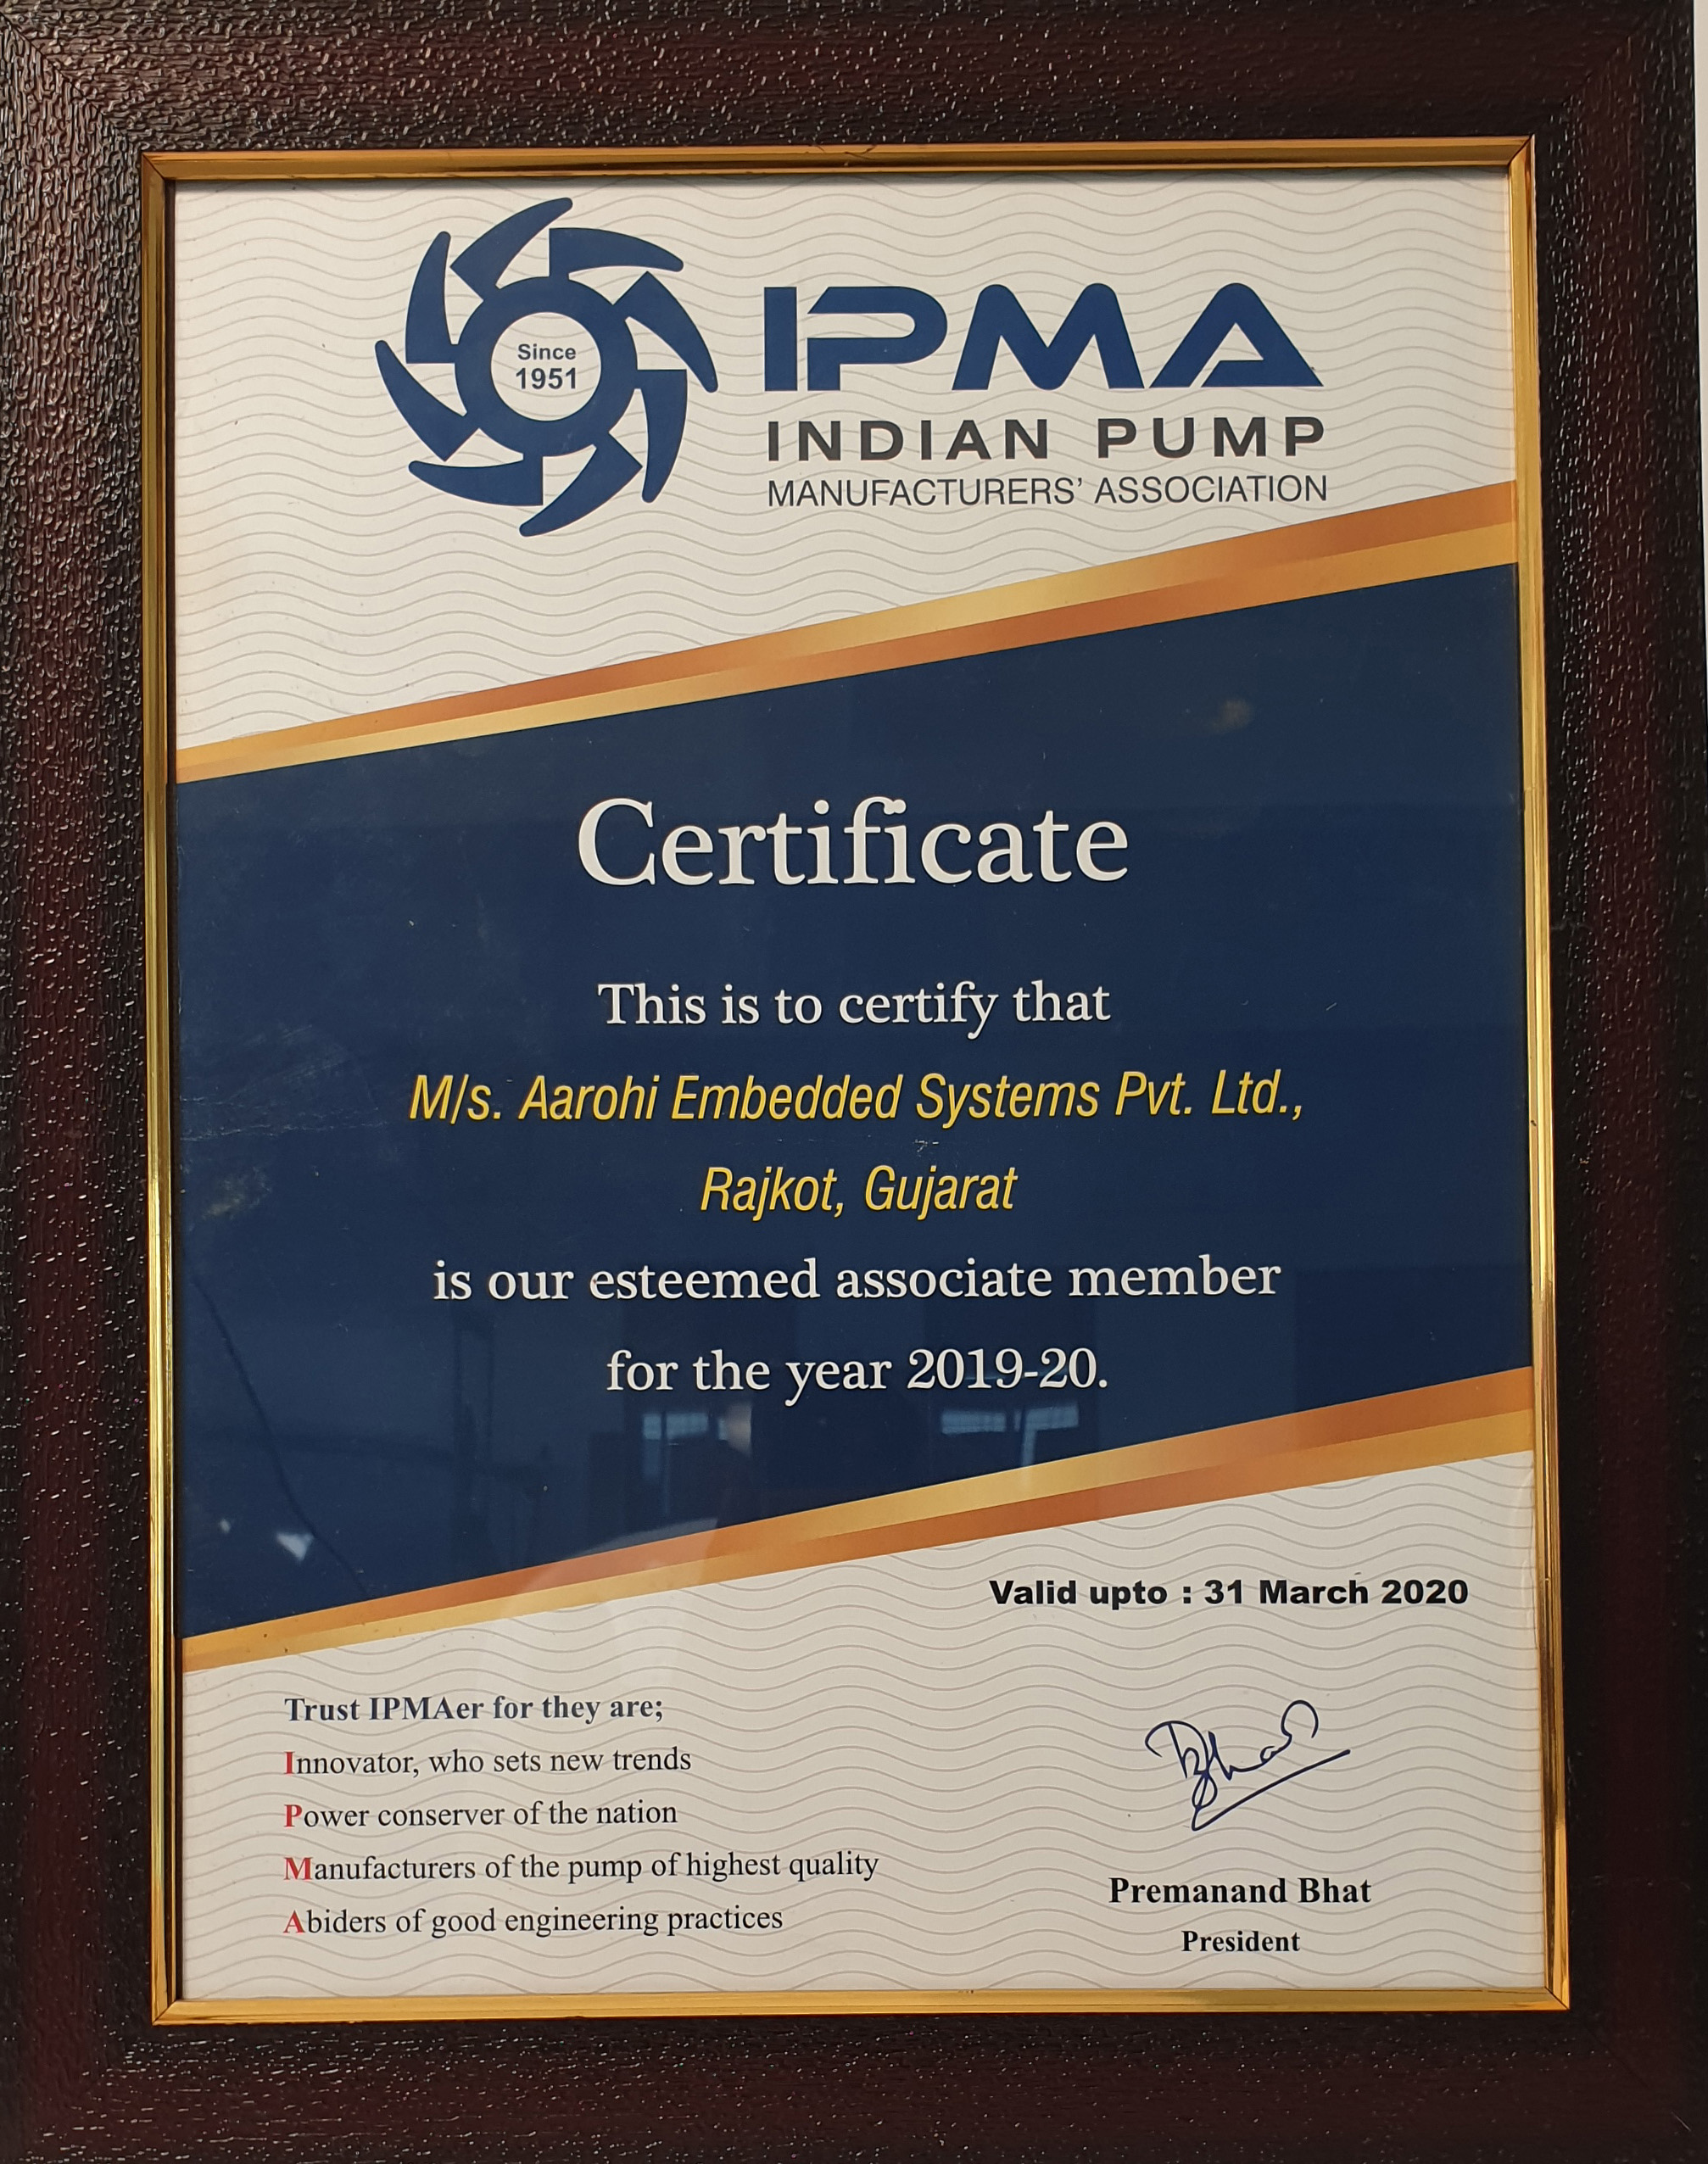 Indian pump manufacturing Association Certified Aarohi Embedded Systems Pvt Ltd